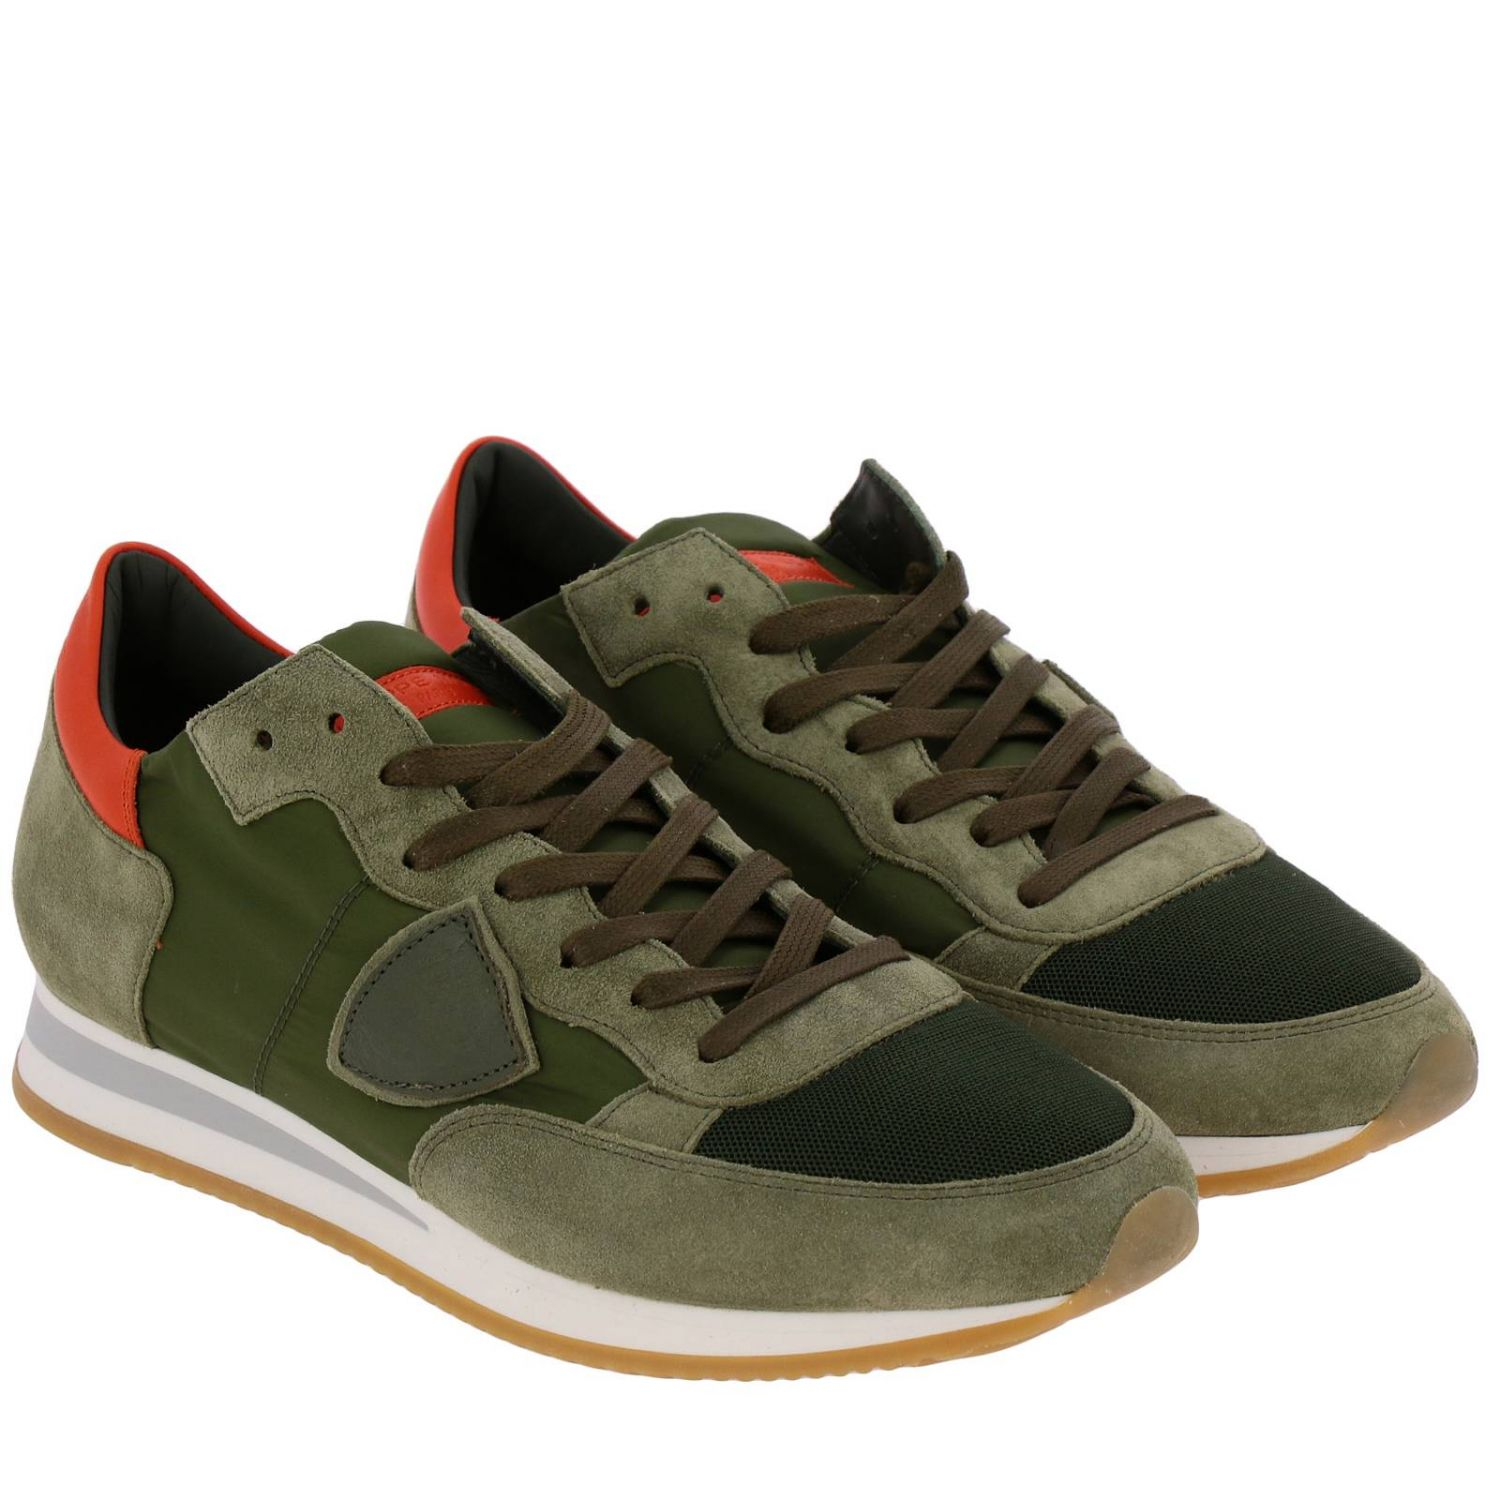 Shoes men Philippe Model military 2